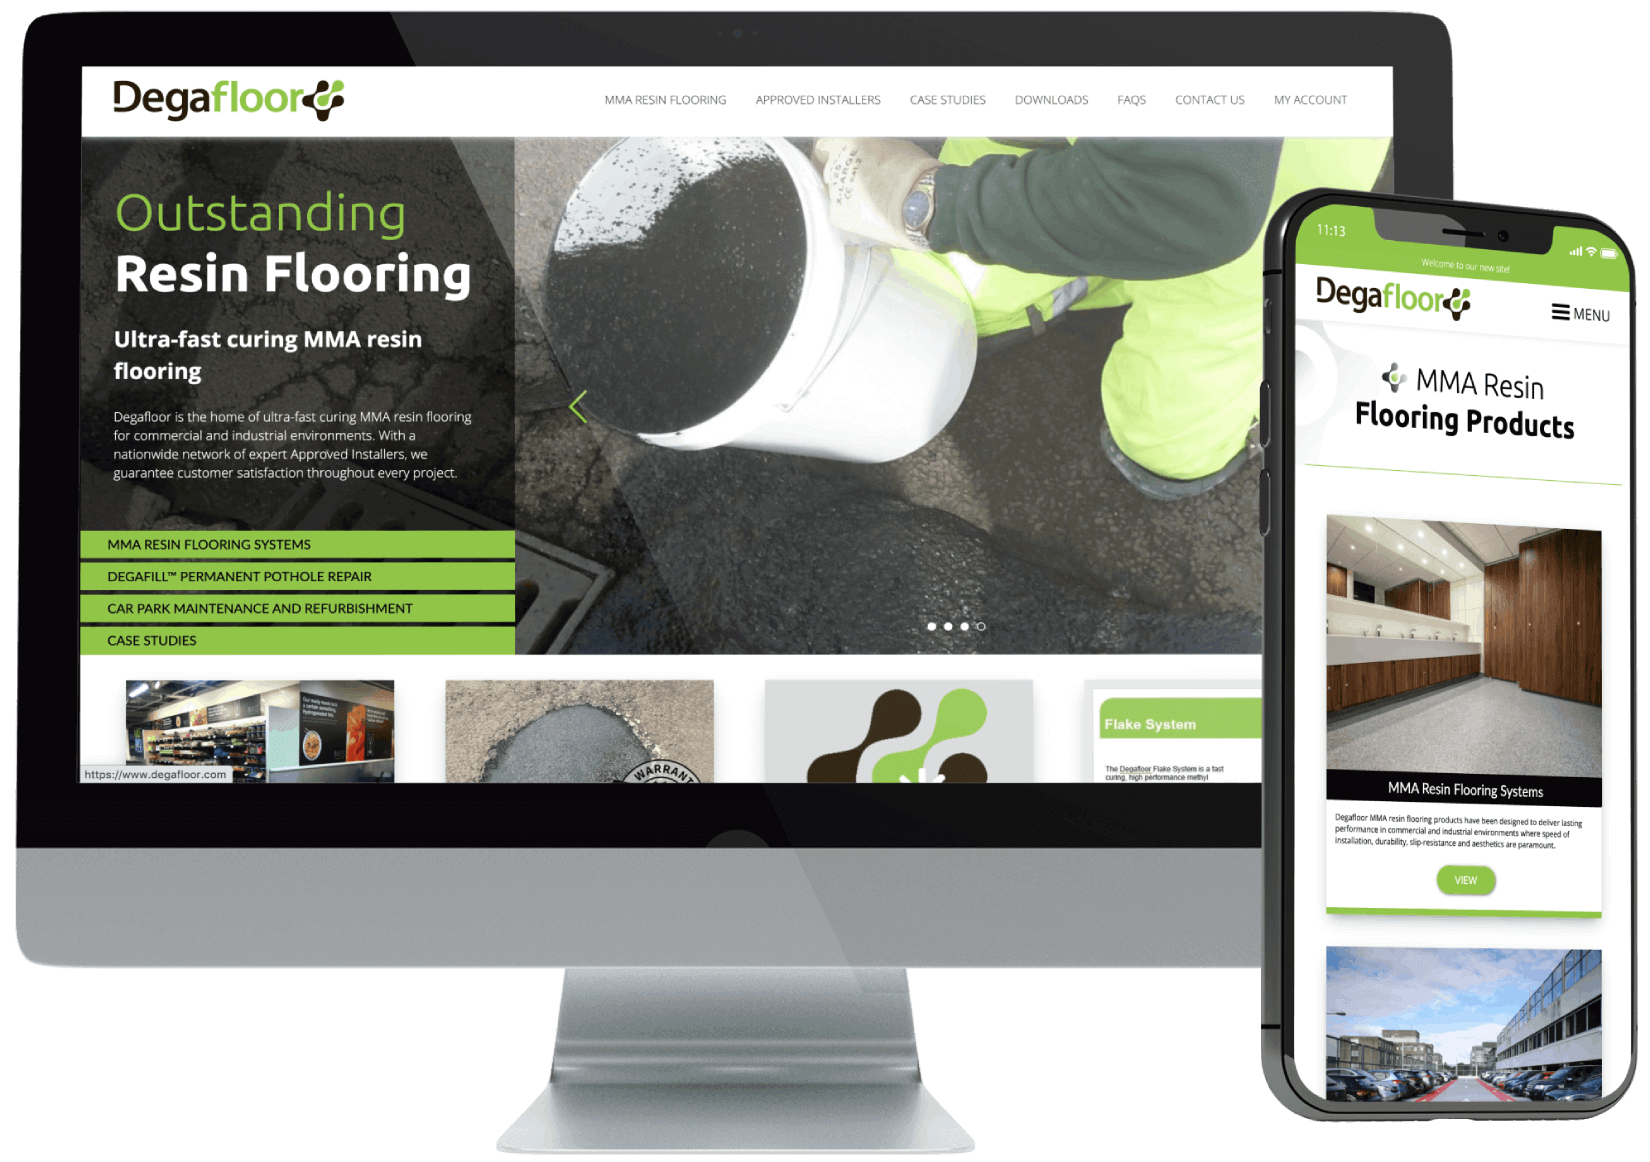 Degafloor Website Design and Development